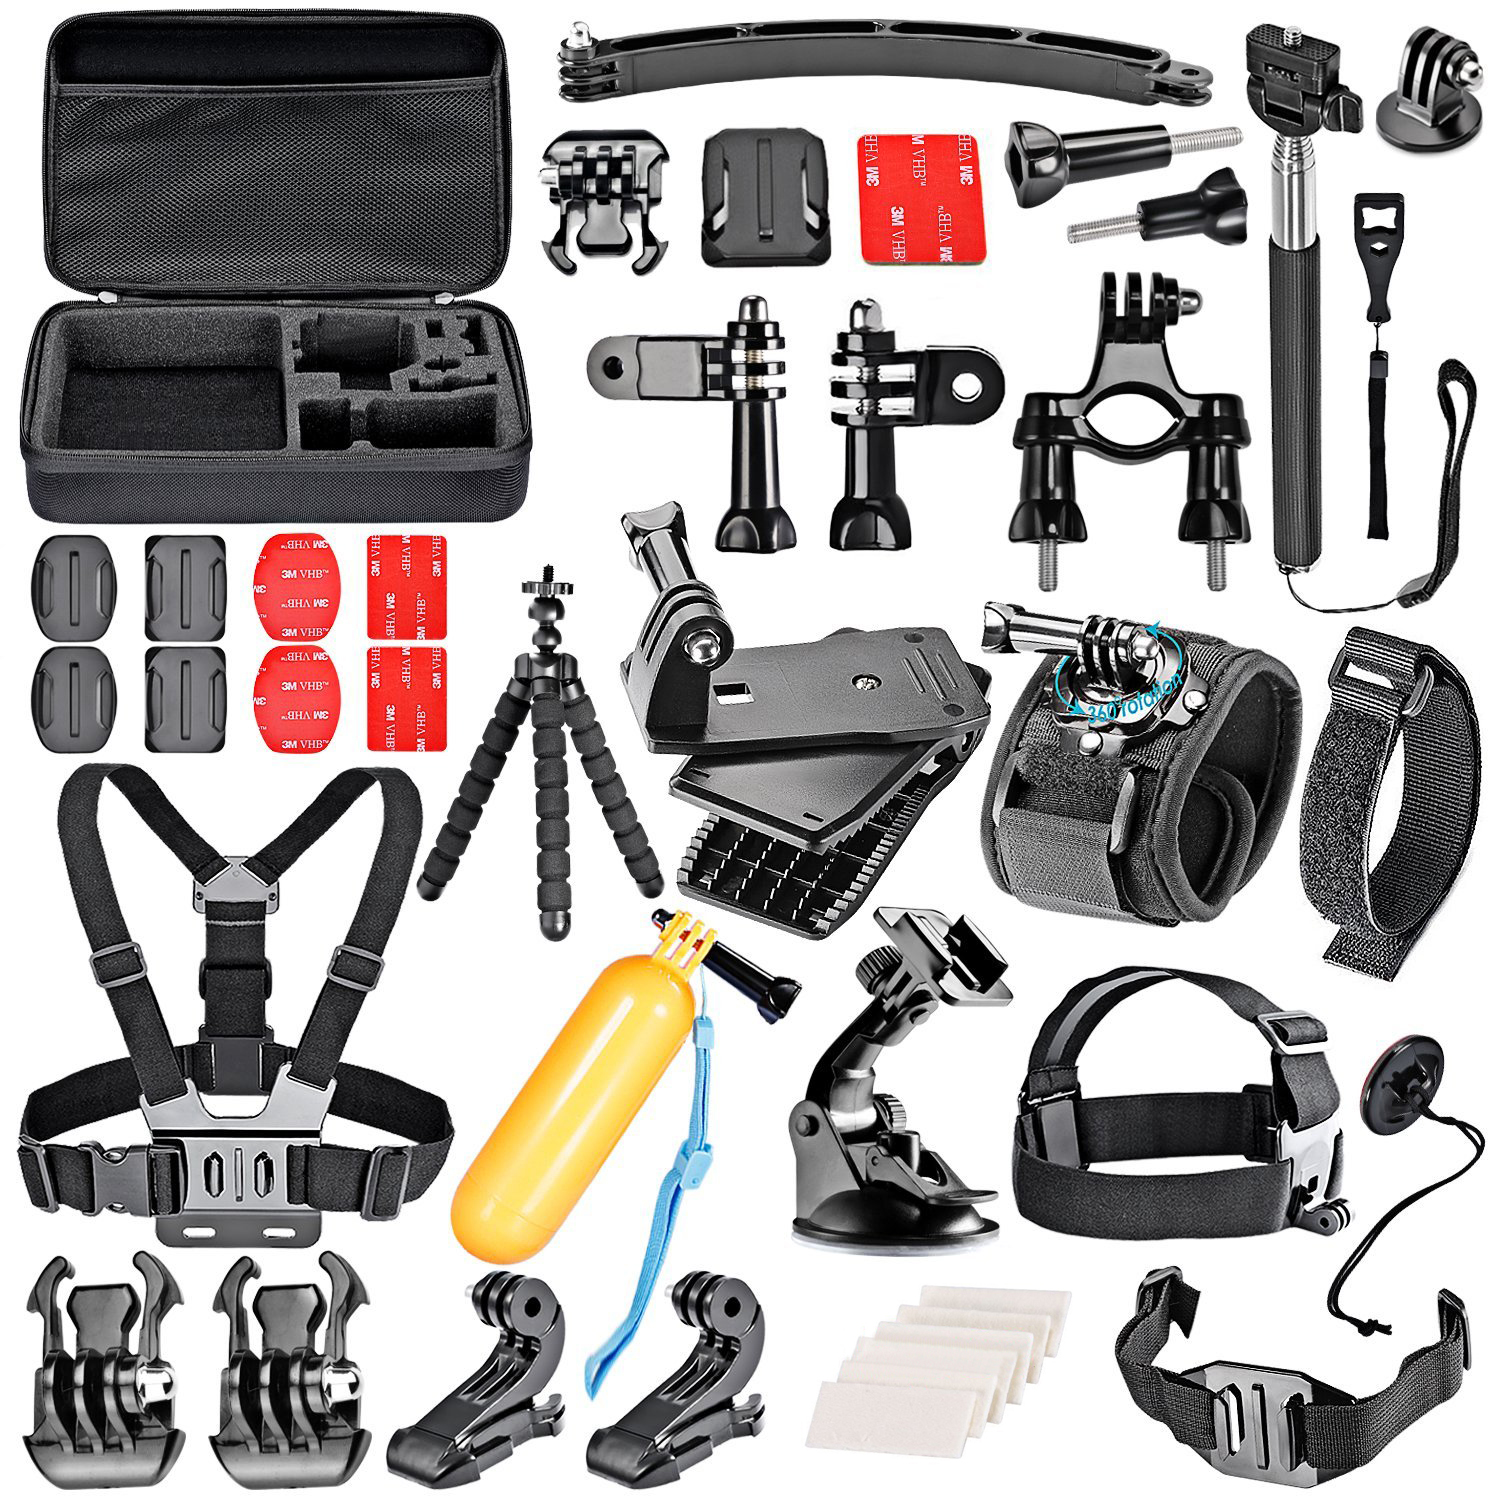 50-In-1 Sport Accessory Kit for GoPro Hero4 Session Hero1 2 3 3+ 4 SJ4000 For Xiaomi Yi in Rowing Diving and Other